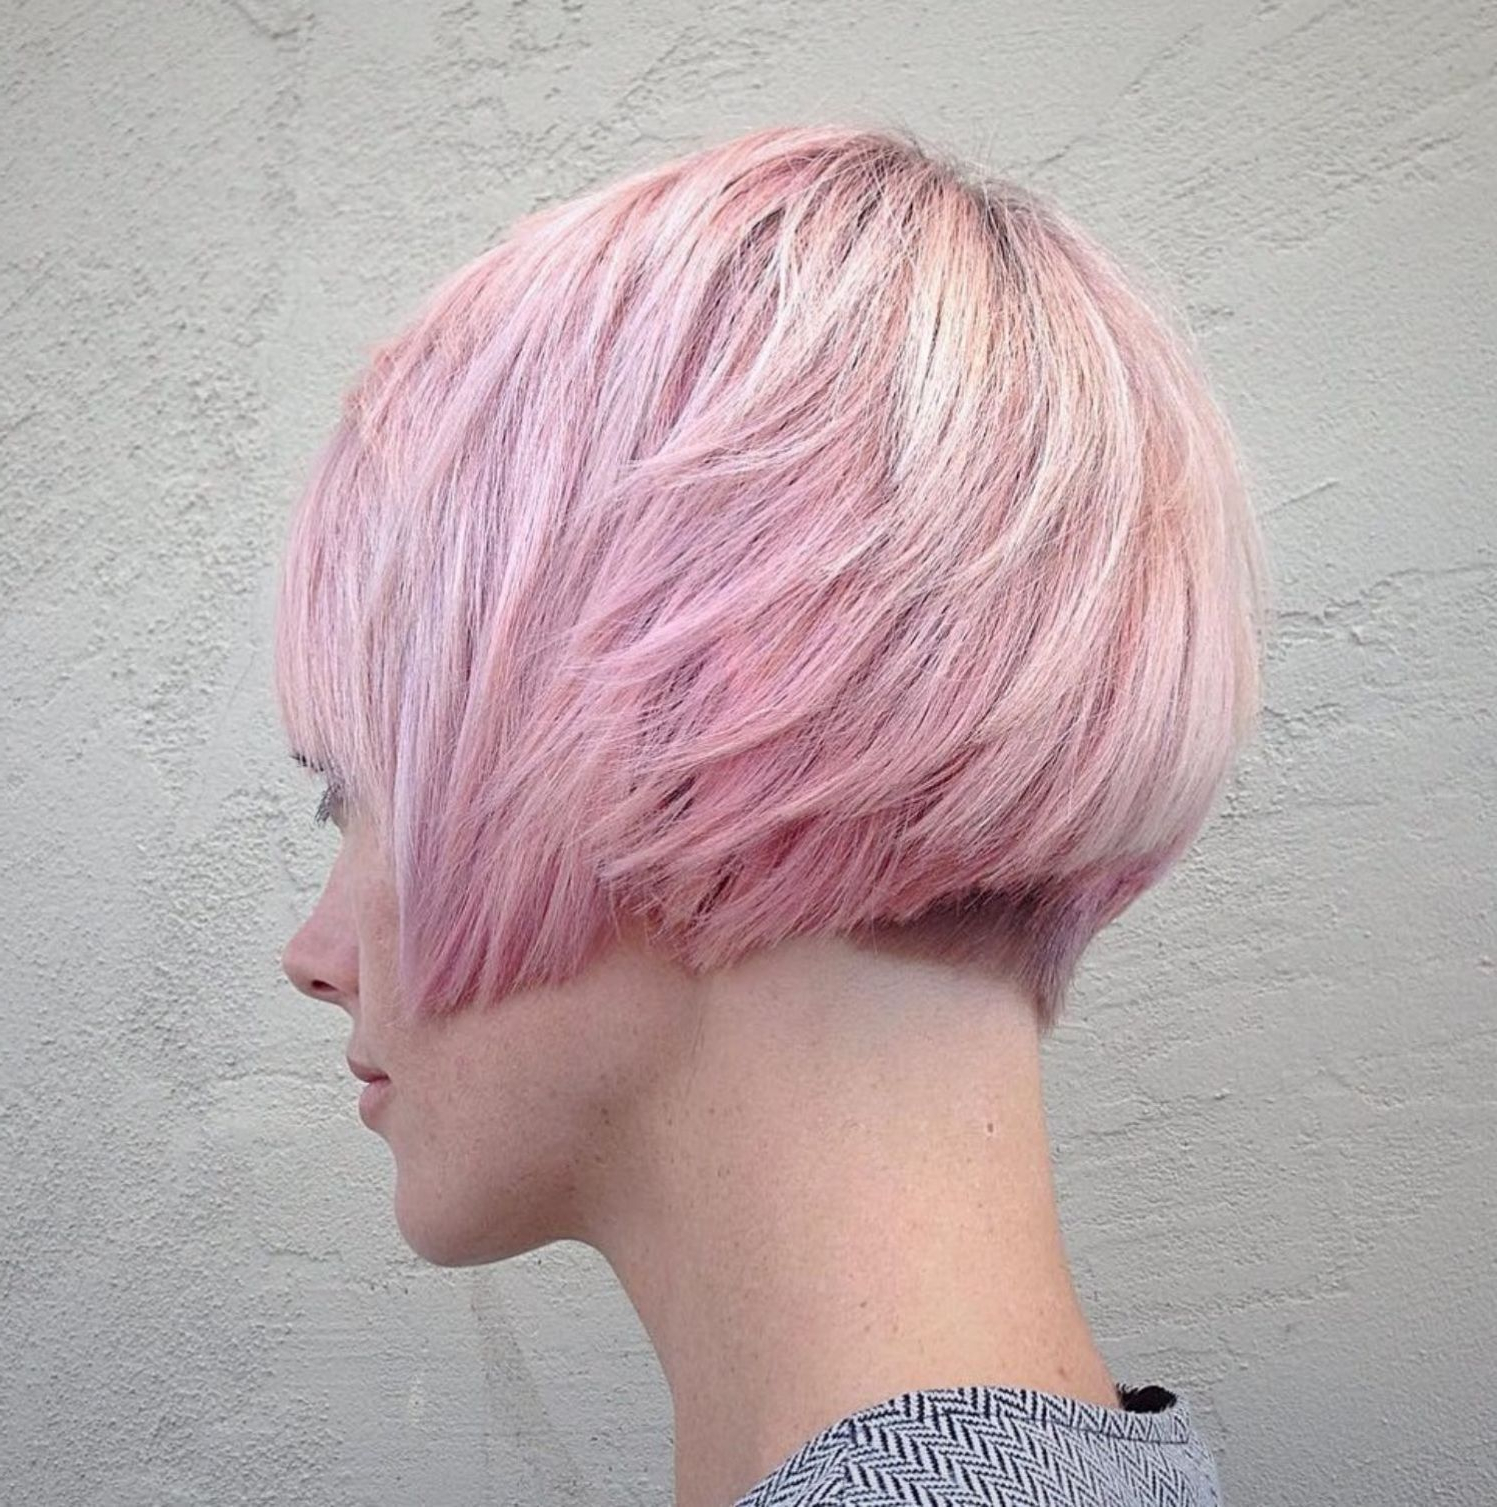 43 Graduated Bob Hairstyles Ideas You Should Try Right Now Regarding Pastel Pink Textured Pixie Hairstyles (View 16 of 20)